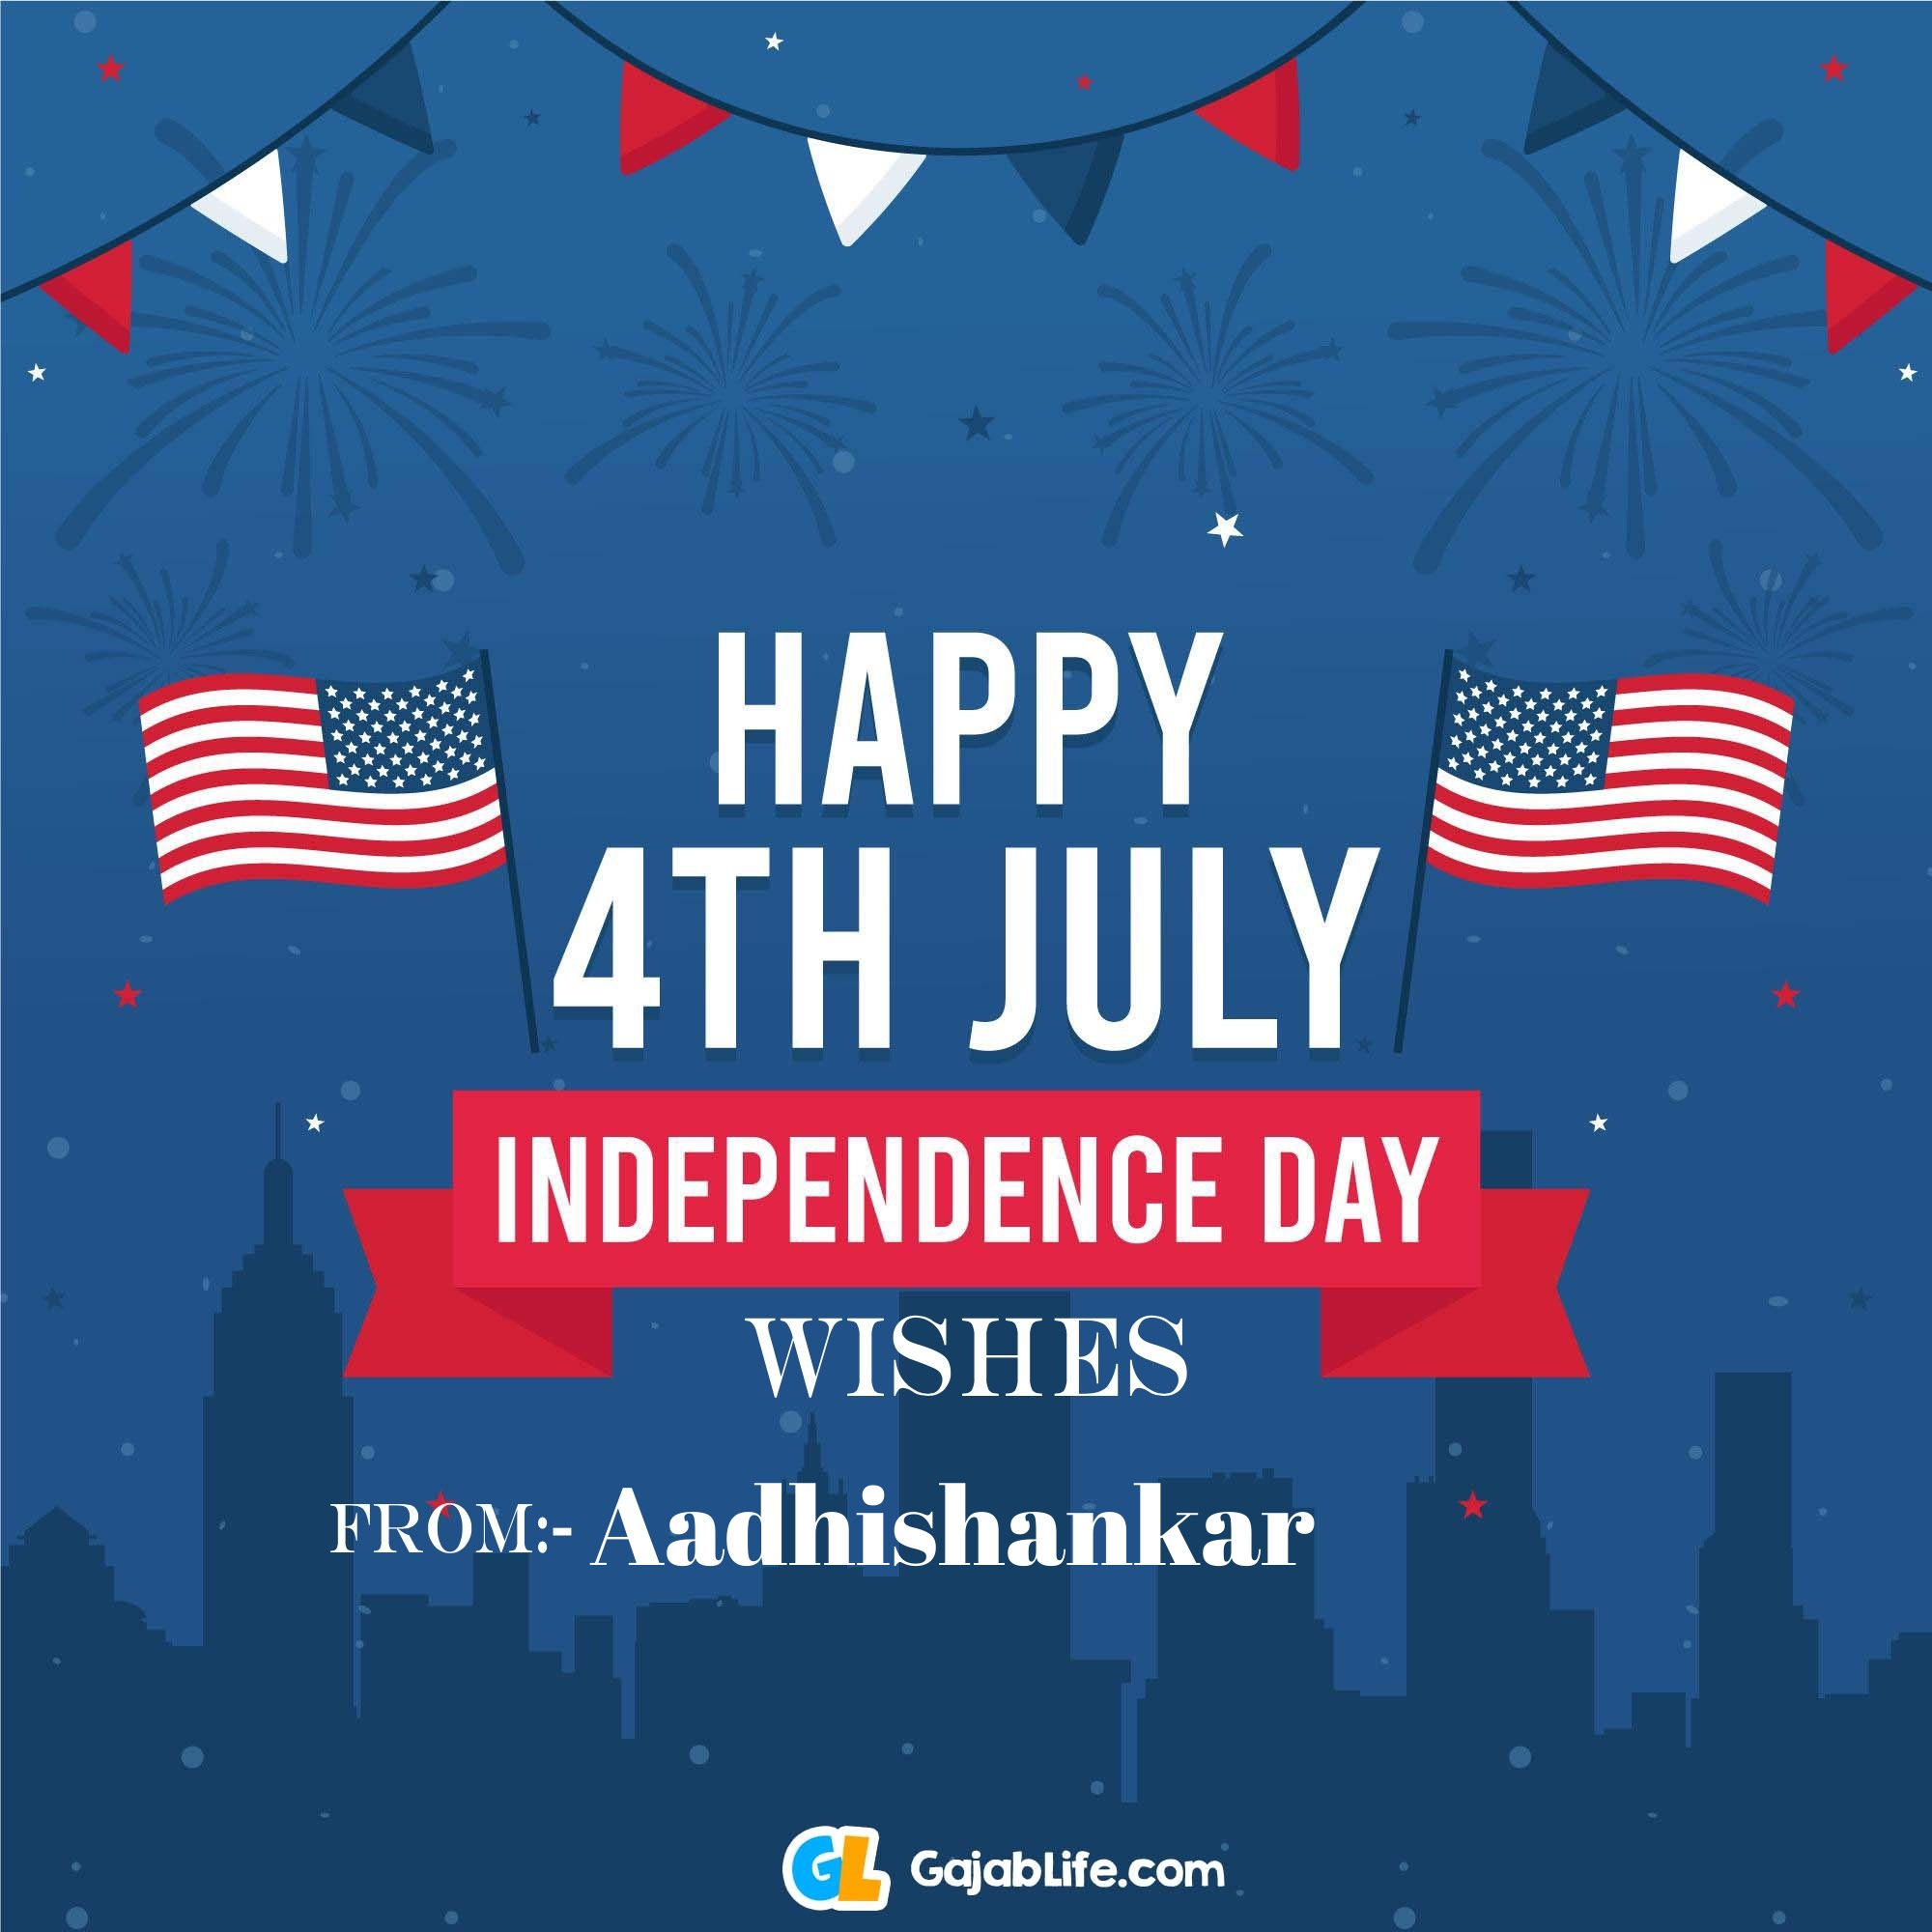 Aadhishankar happy independence day united states of america images